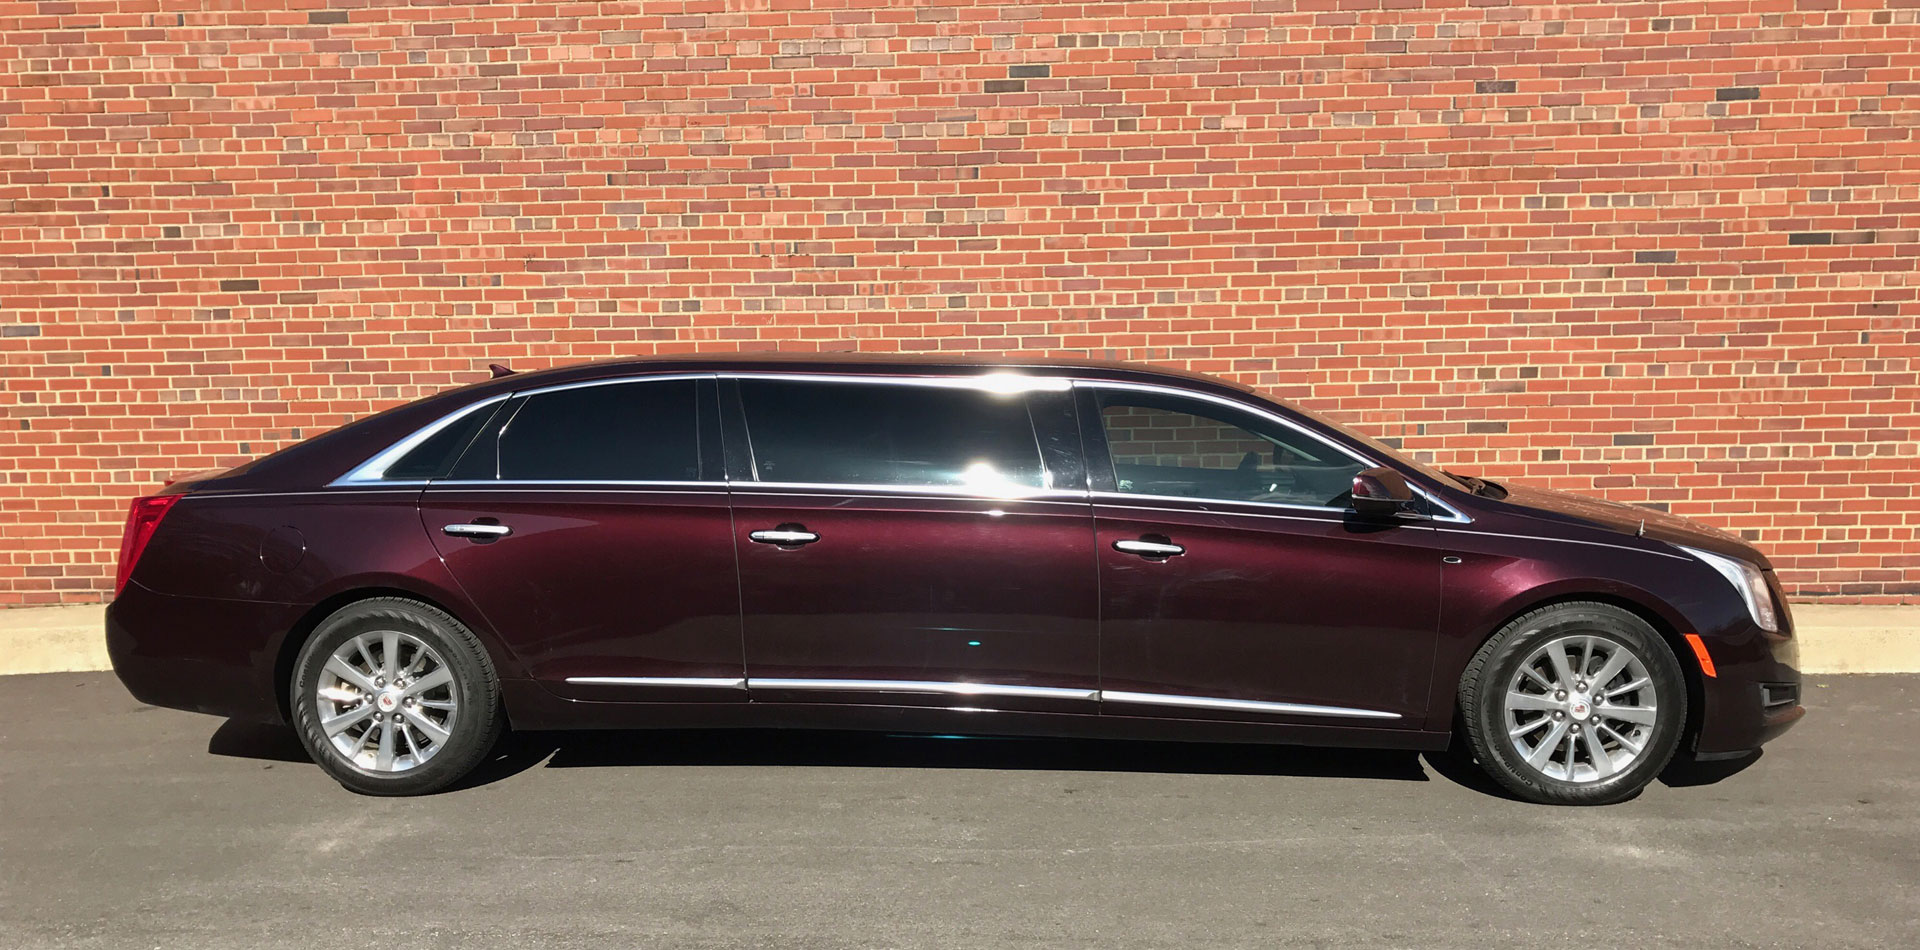 American Coach Sales Cleveland And Columbus Hearses And Limousines